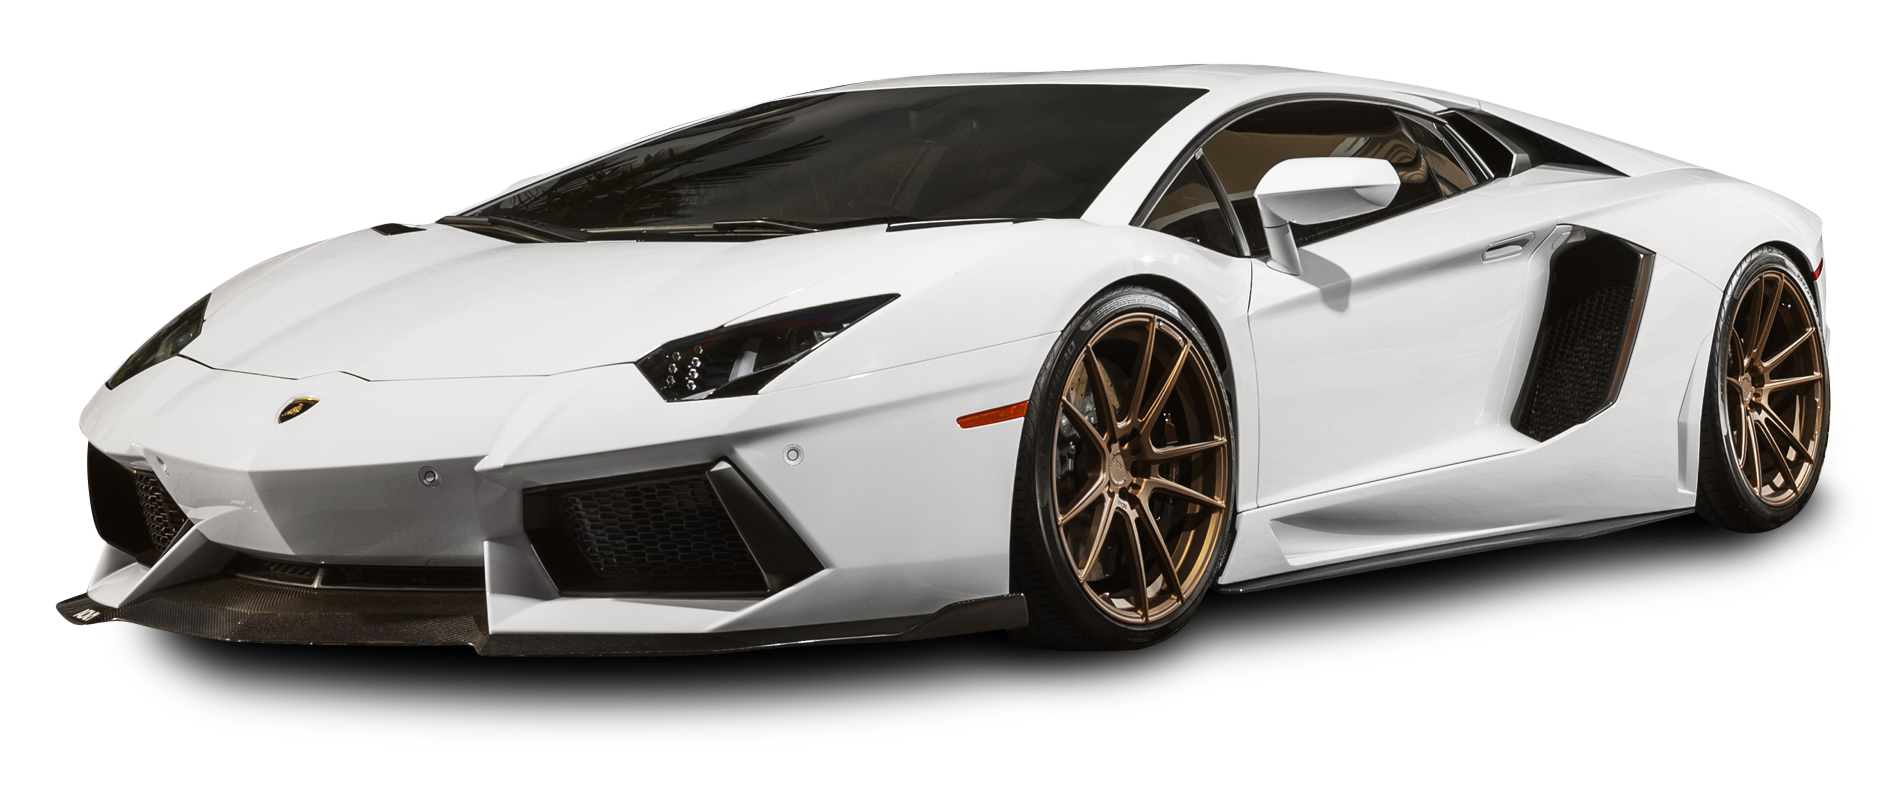 Lamborghini gallardo png. Car transparent pictures free